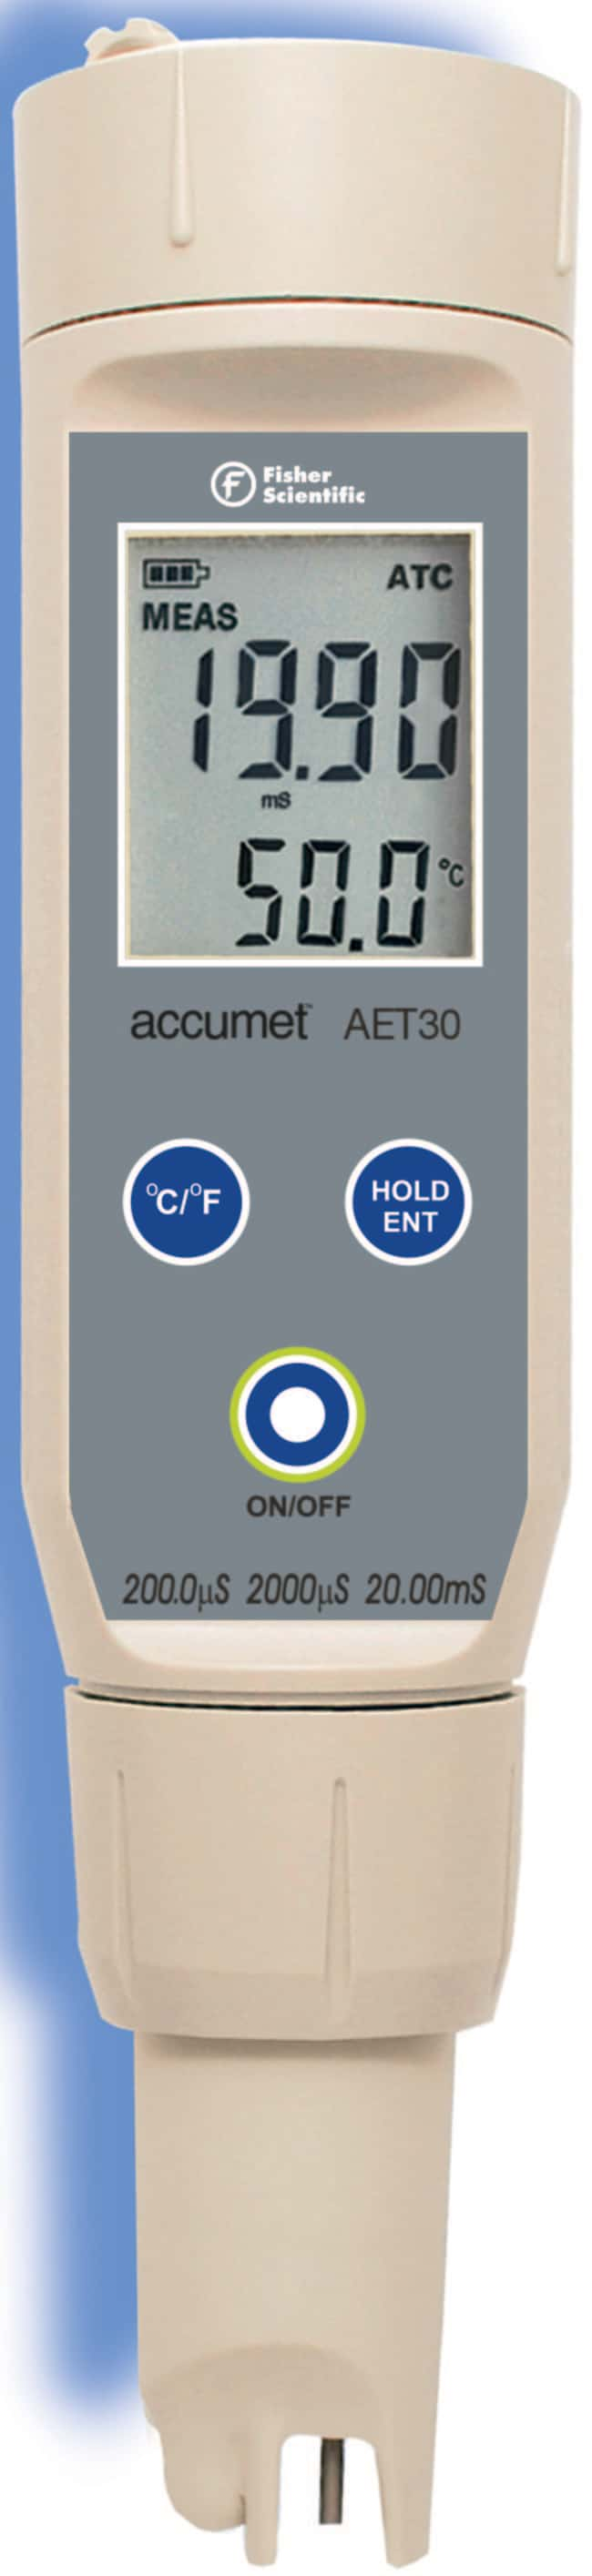 accumet accumet™ AET30 Conductivity Tester  Portable Conductivity Meters